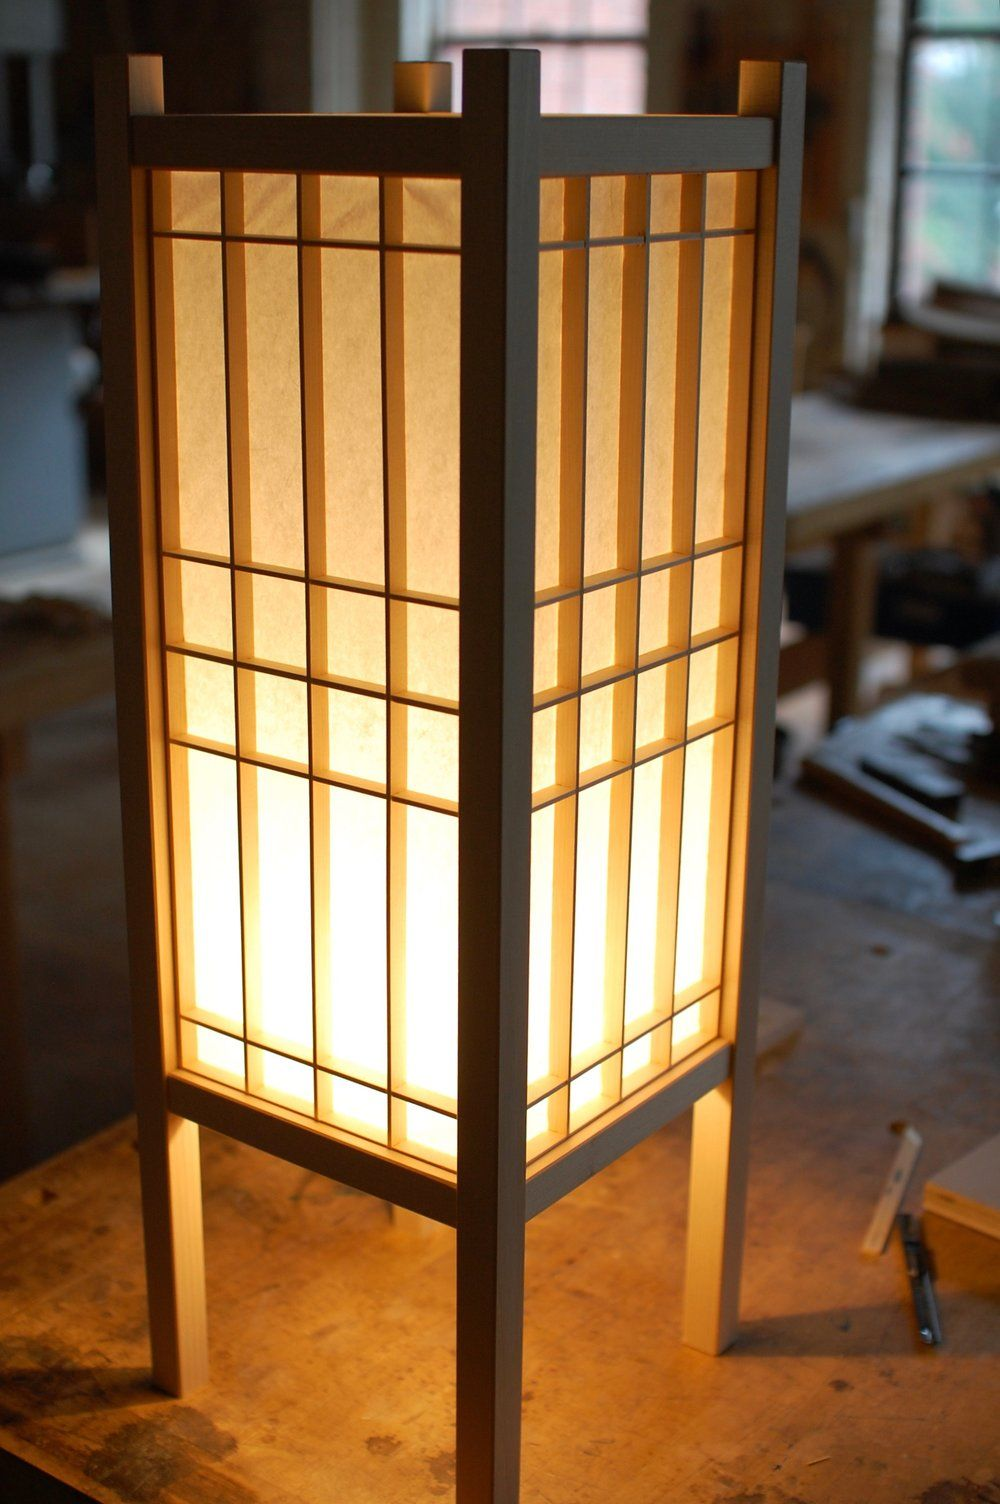 Andon Making A Traditional Japanese Lamp Philadelphia Furniture Workshop In 2020 Japanese Lamps Japanese Home Decor Japanese Bedroom